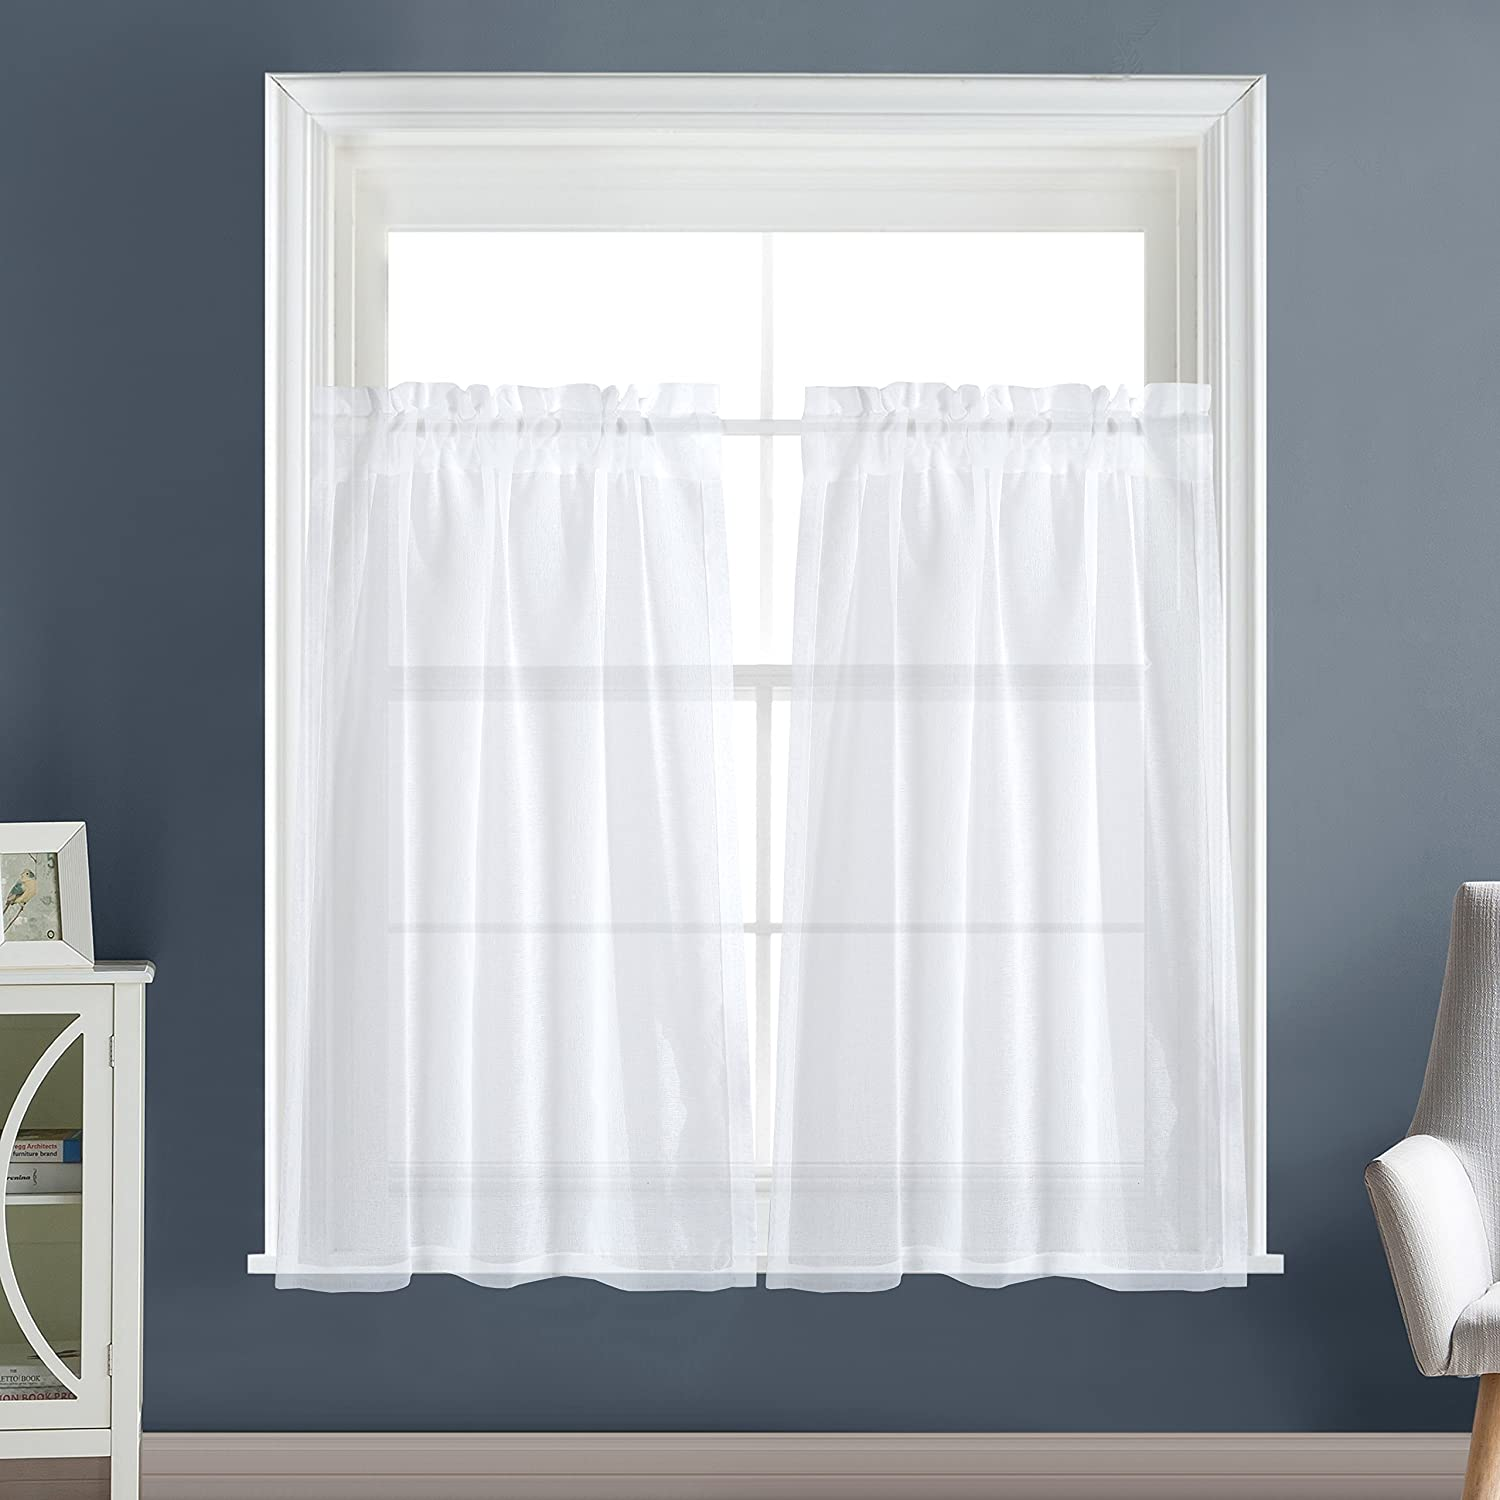 Dreaming Casa Solid Sheer Kitchen Curtains Valance Tier Curtains Draperie White Rod Pocket 2 Panels 2(30